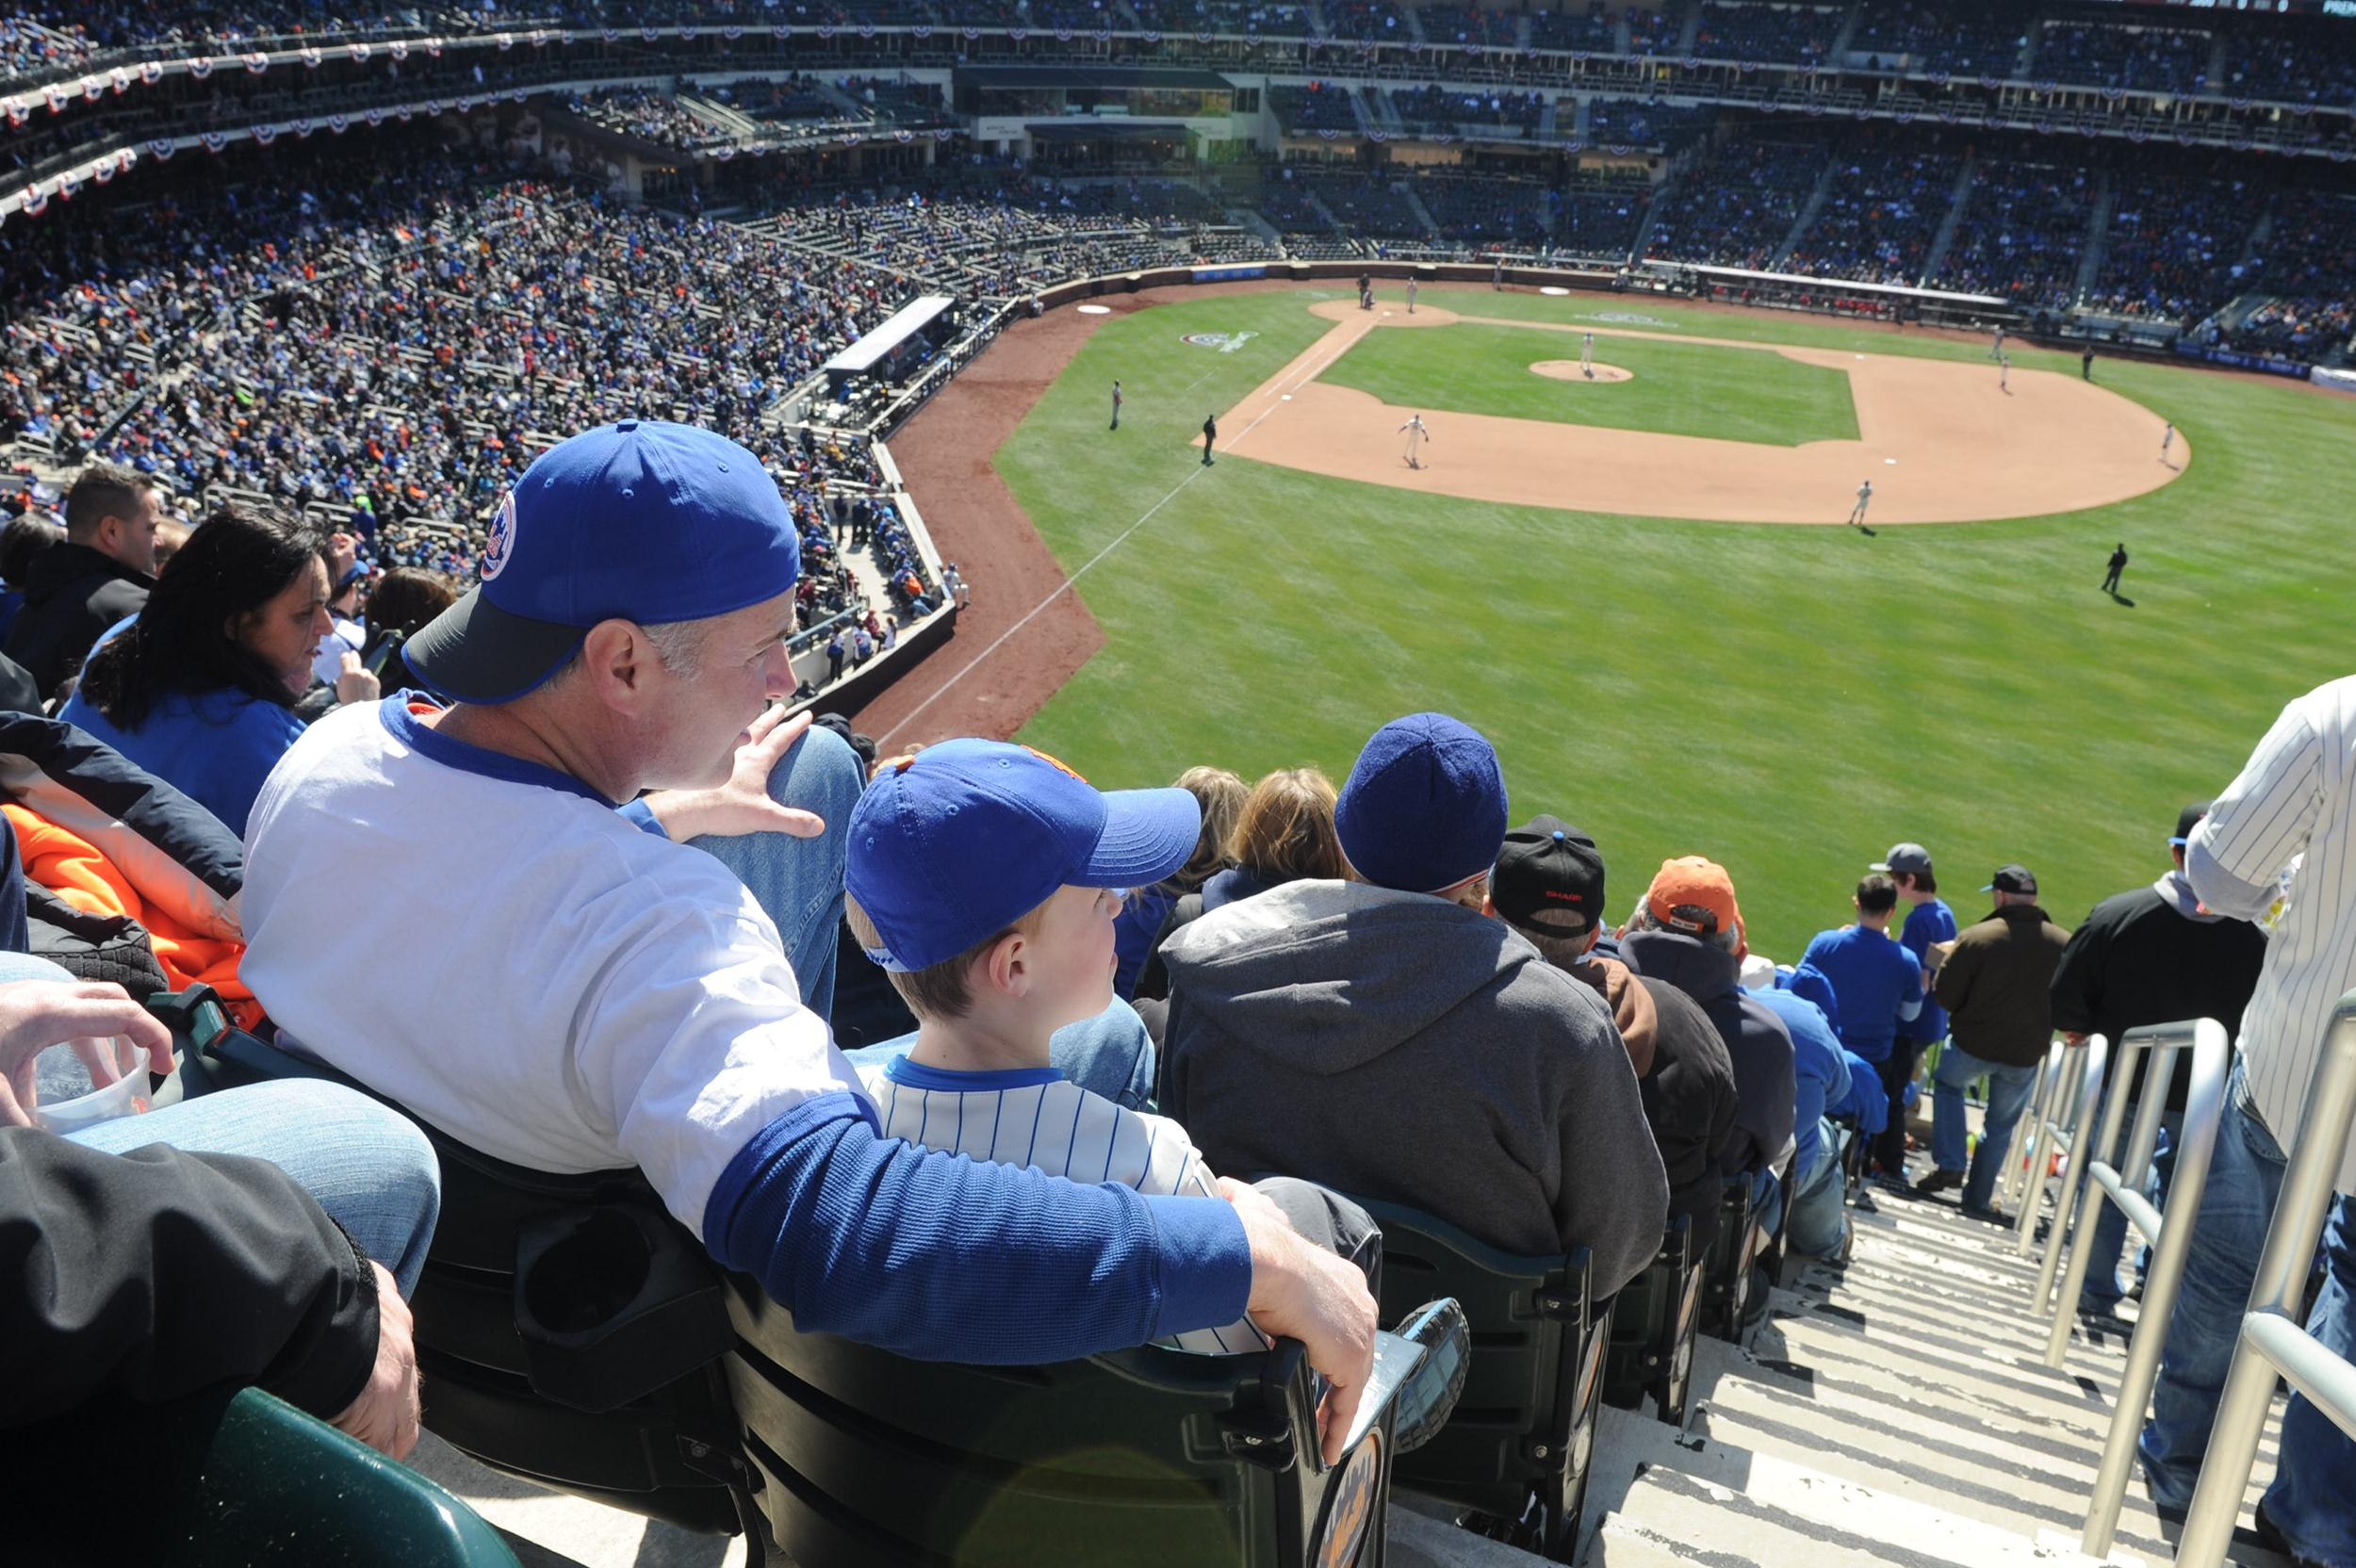 Image: A father and his son watch an Opening Day game between the New York Mets and the Washington Nationals